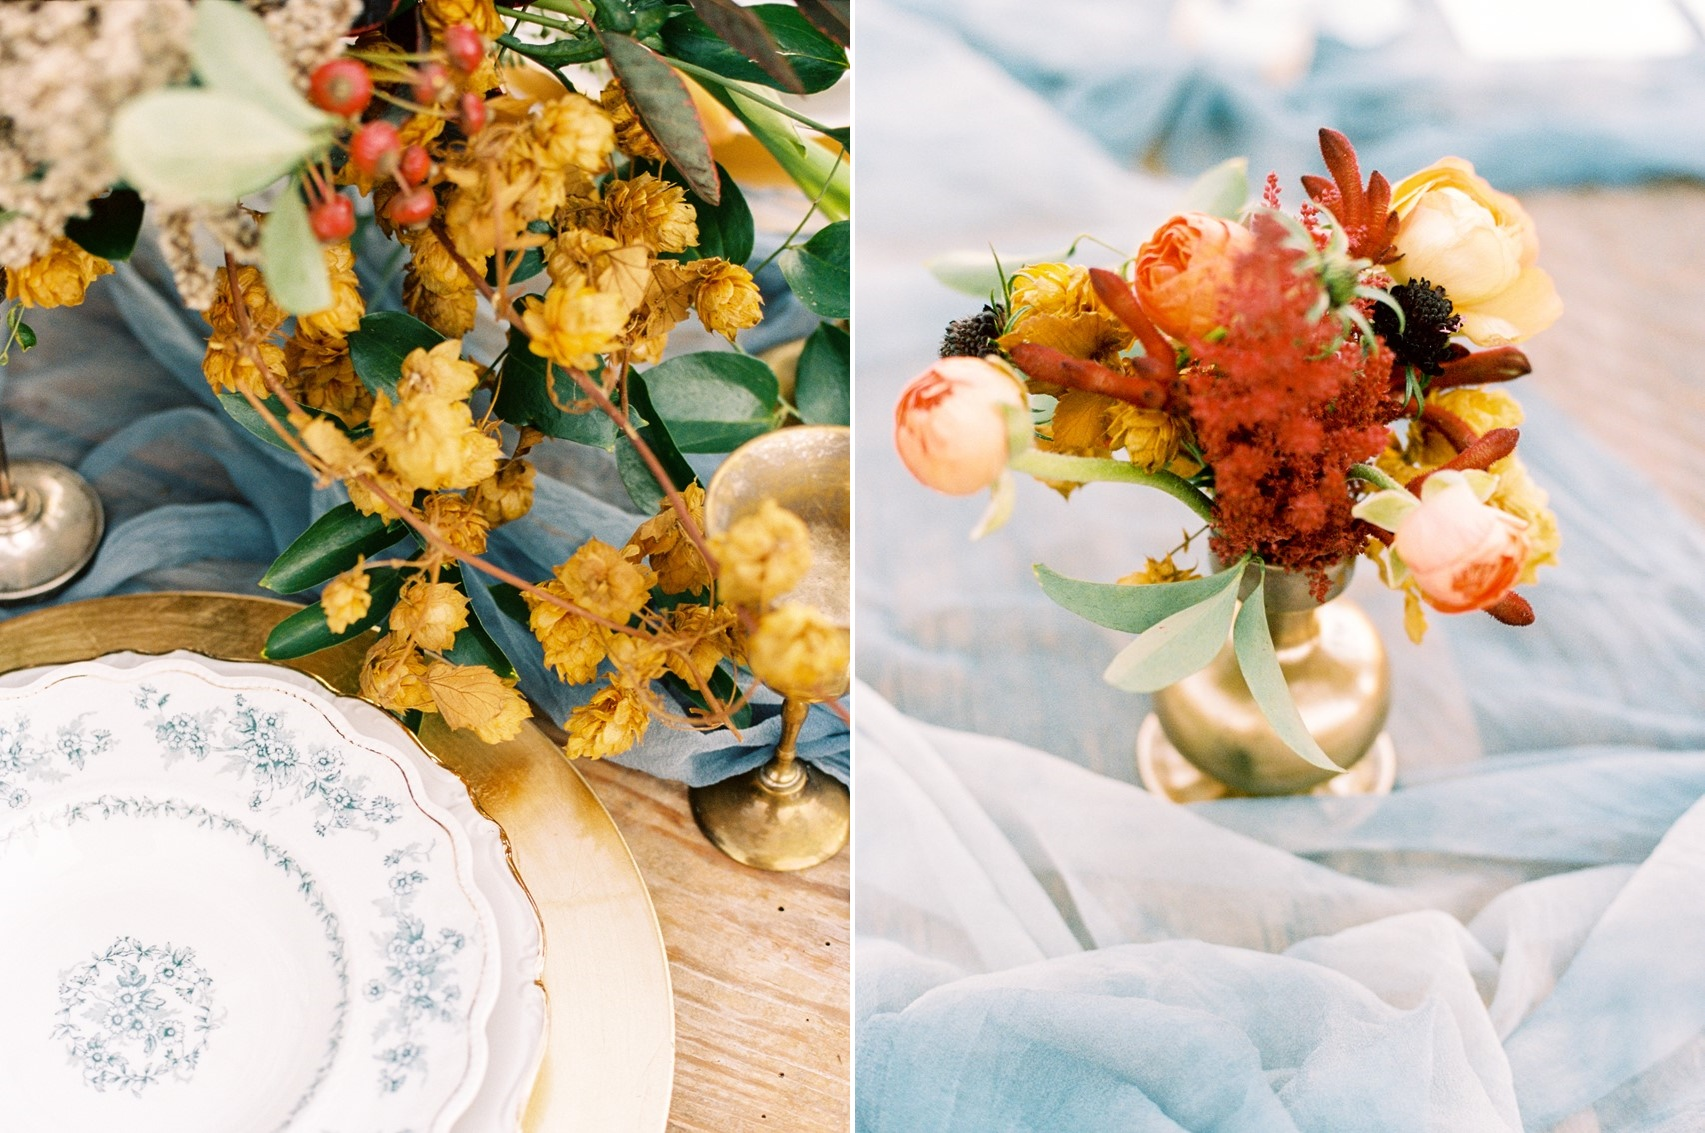 Winter Wedding Centerpiece in Blue, Gold & Orange